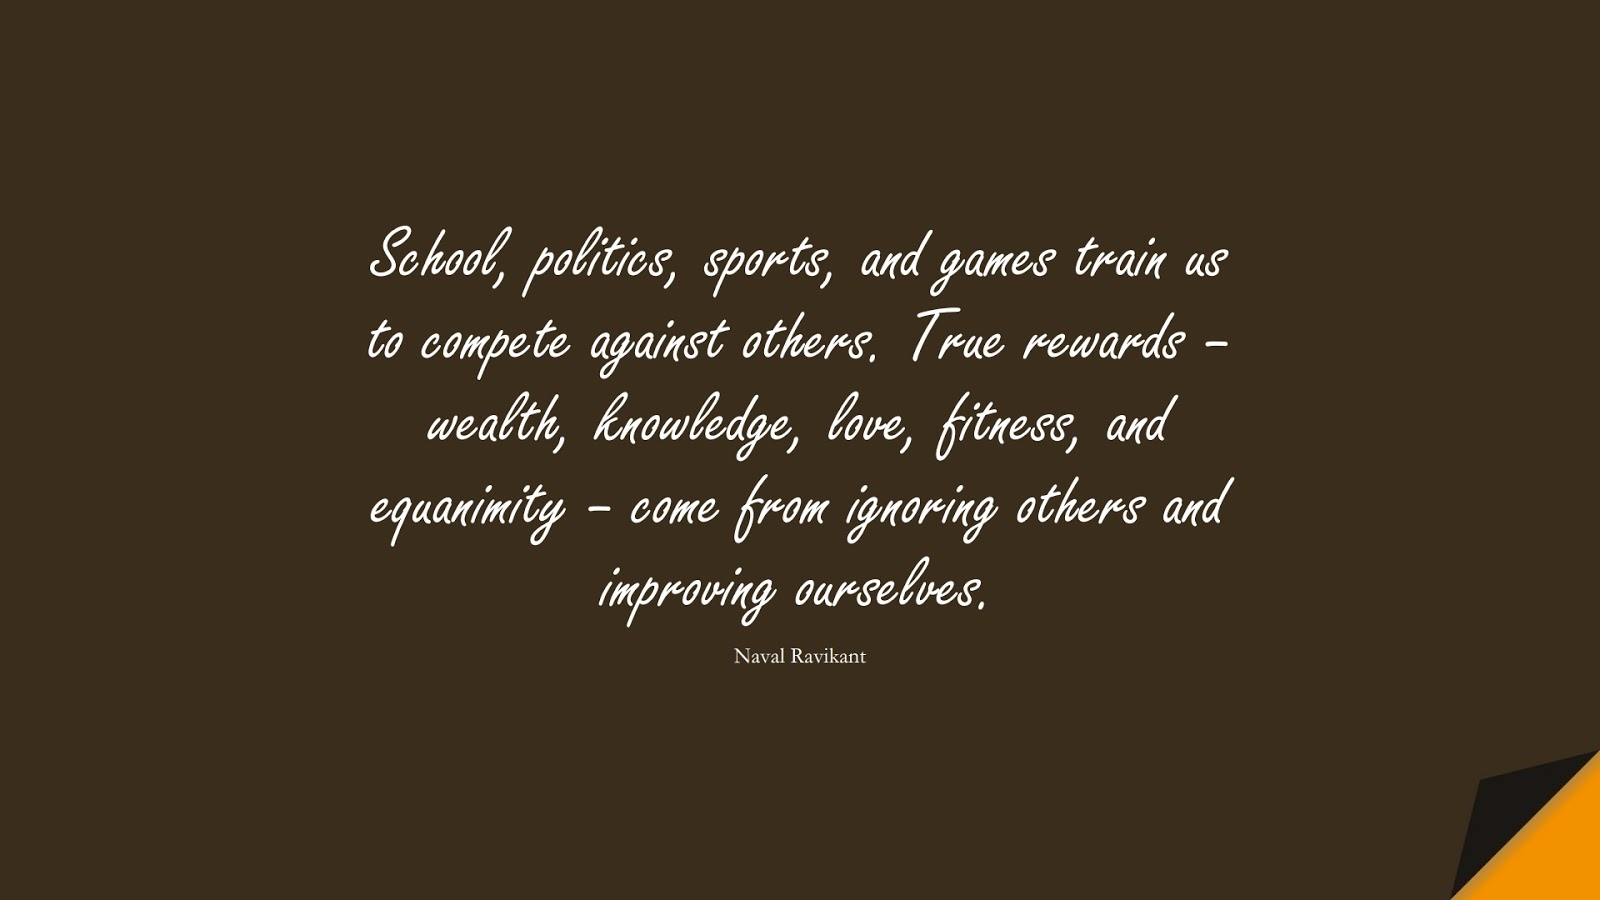 School, politics, sports, and games train us to compete against others. True rewards – wealth, knowledge, love, fitness, and equanimity – come from ignoring others and improving ourselves. (Naval Ravikant);  #HappinessQuotes